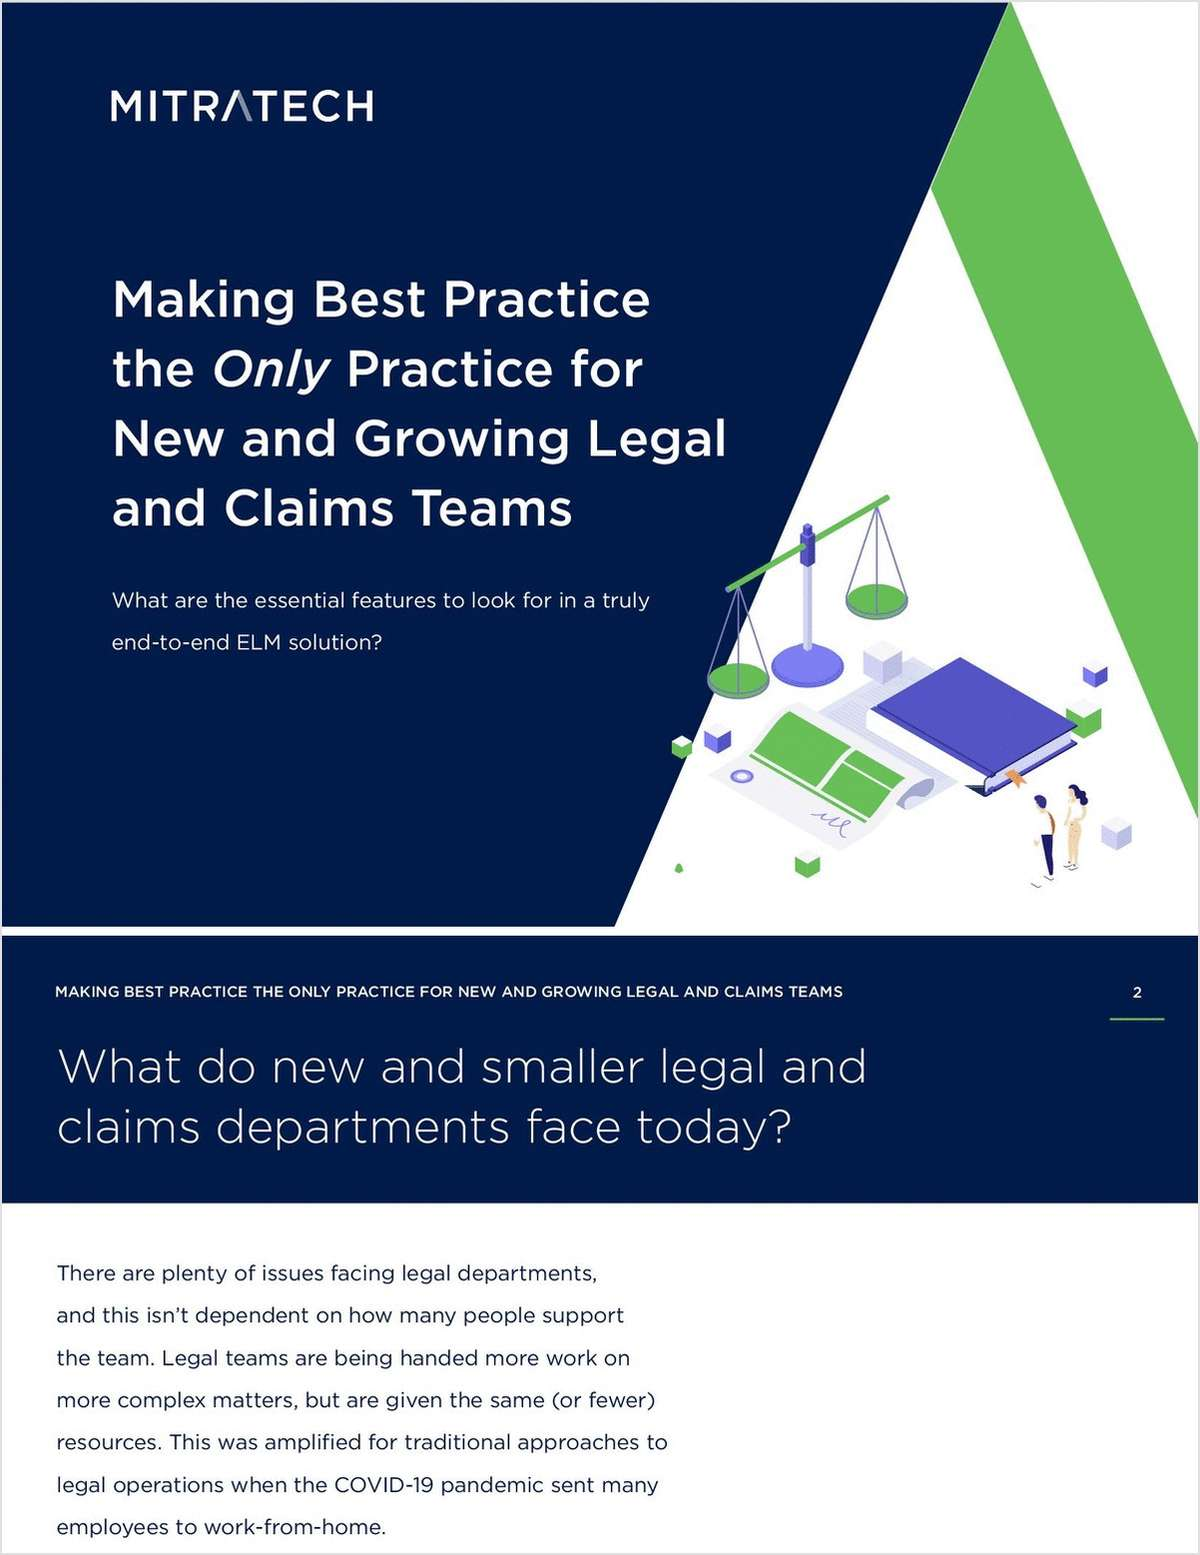 Making Best Practice the Only Practice for New and Growing Legal and Claims Teams